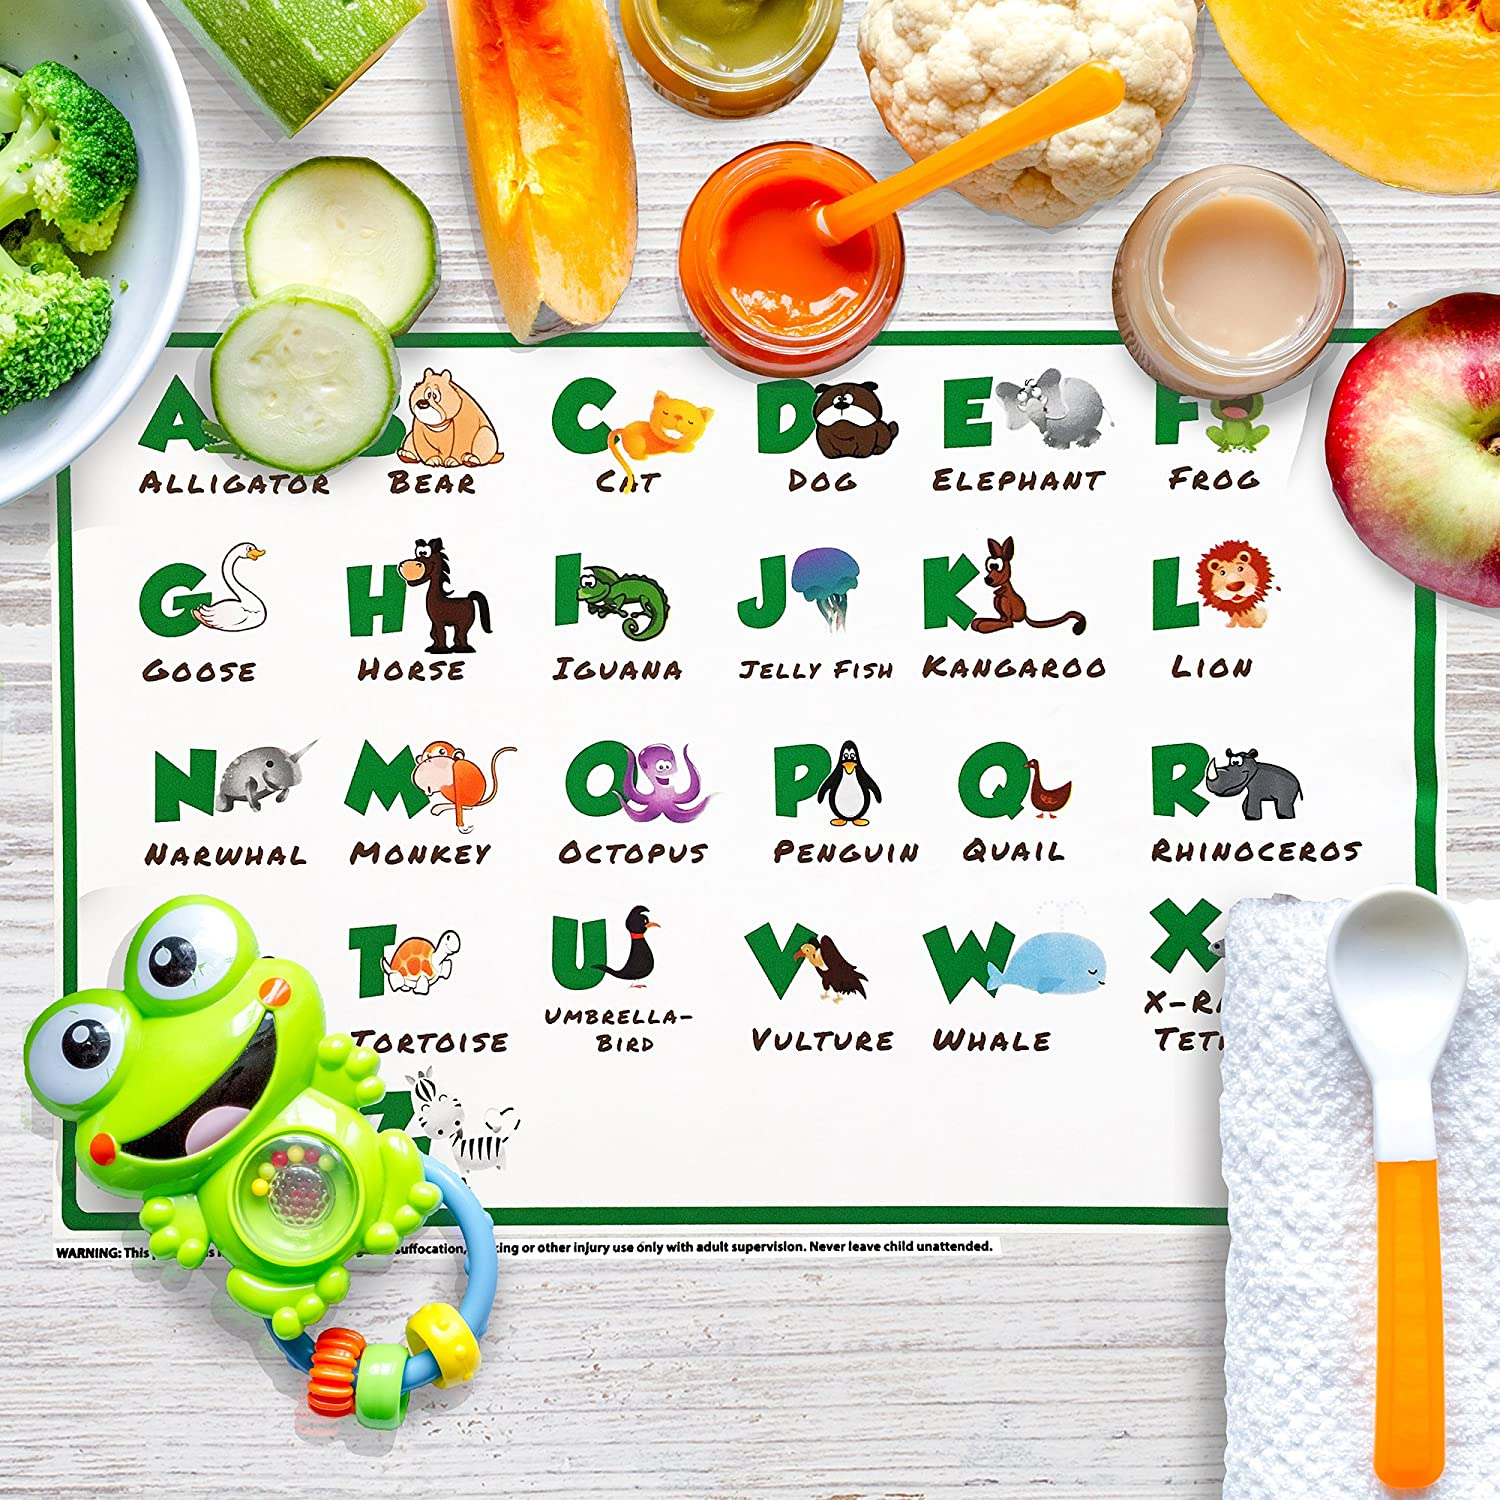 Table Toppers Disposable Placemats For Kids And Baby Placemat | Sticky Back Non Toxic 3 Packs of 20 | Toddler Eating Safety Crafts Easy Clean Up Product By Home Sensibles